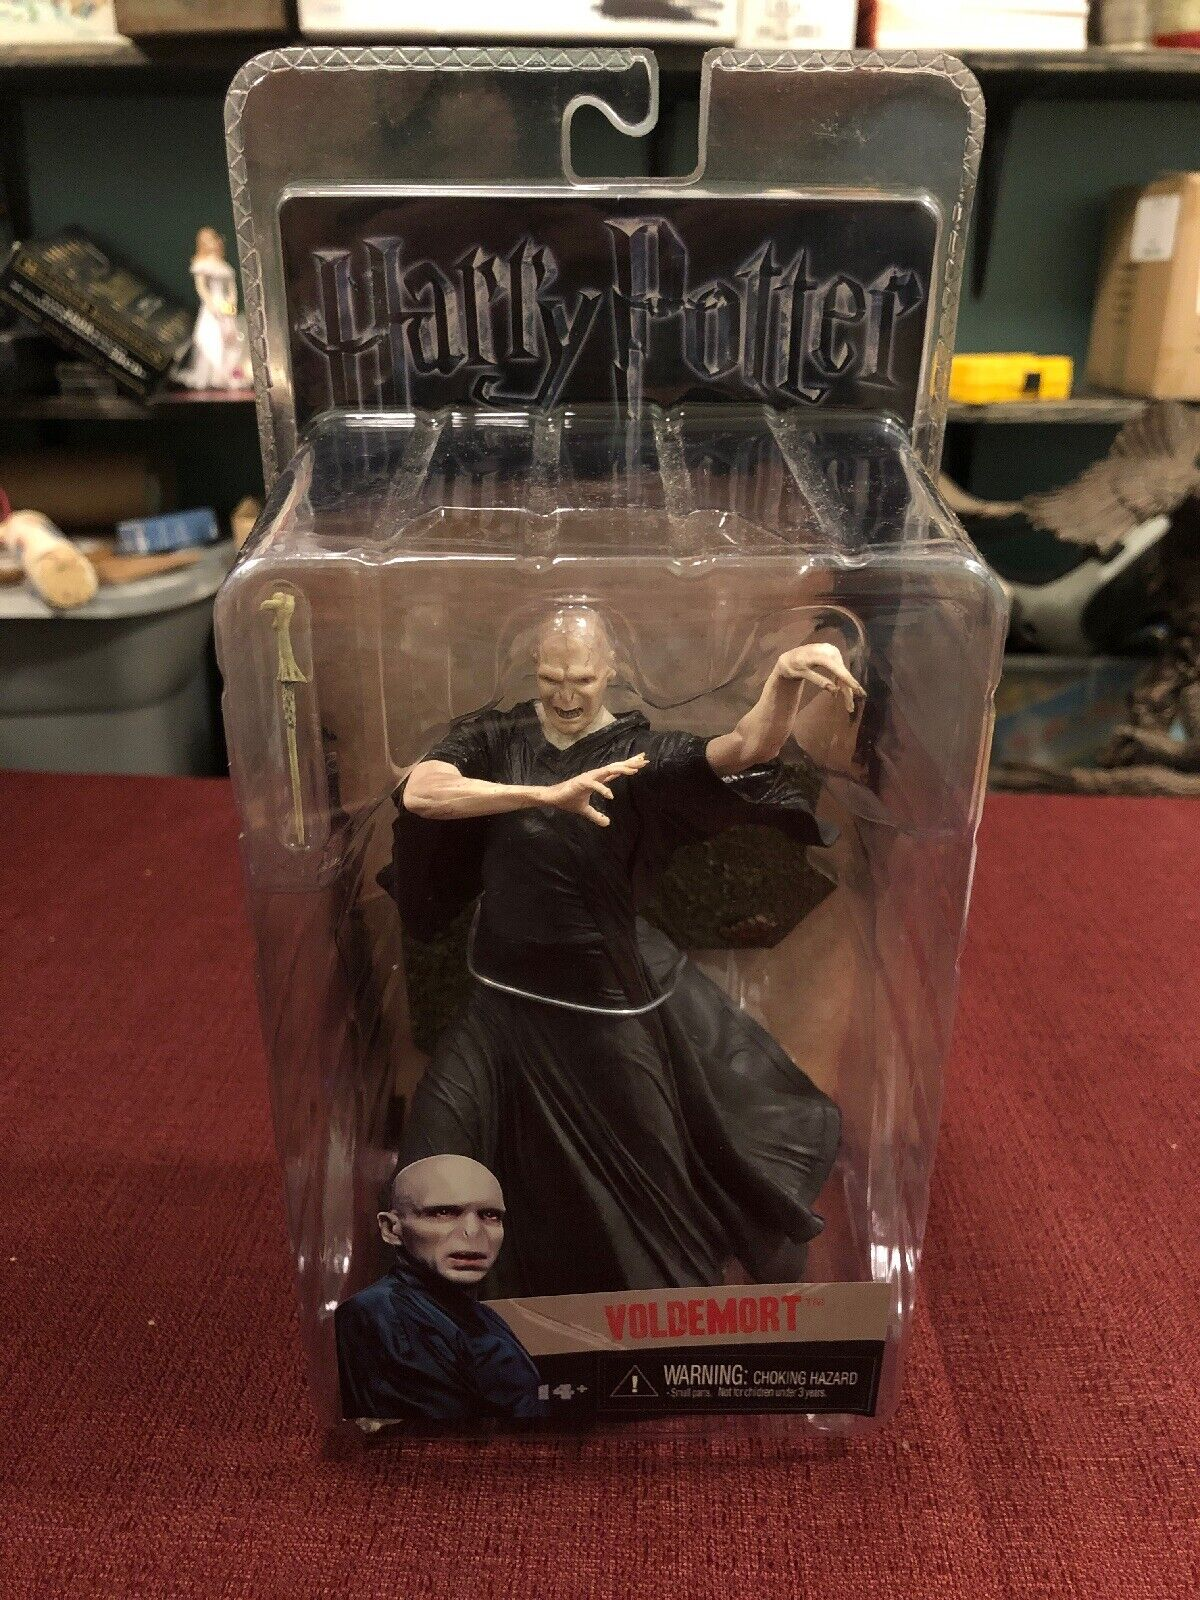 Nuovo  NECA Harry Potter The Deathly Htuttiows Series 2 Lord Voldemort azione cifra  grande sconto